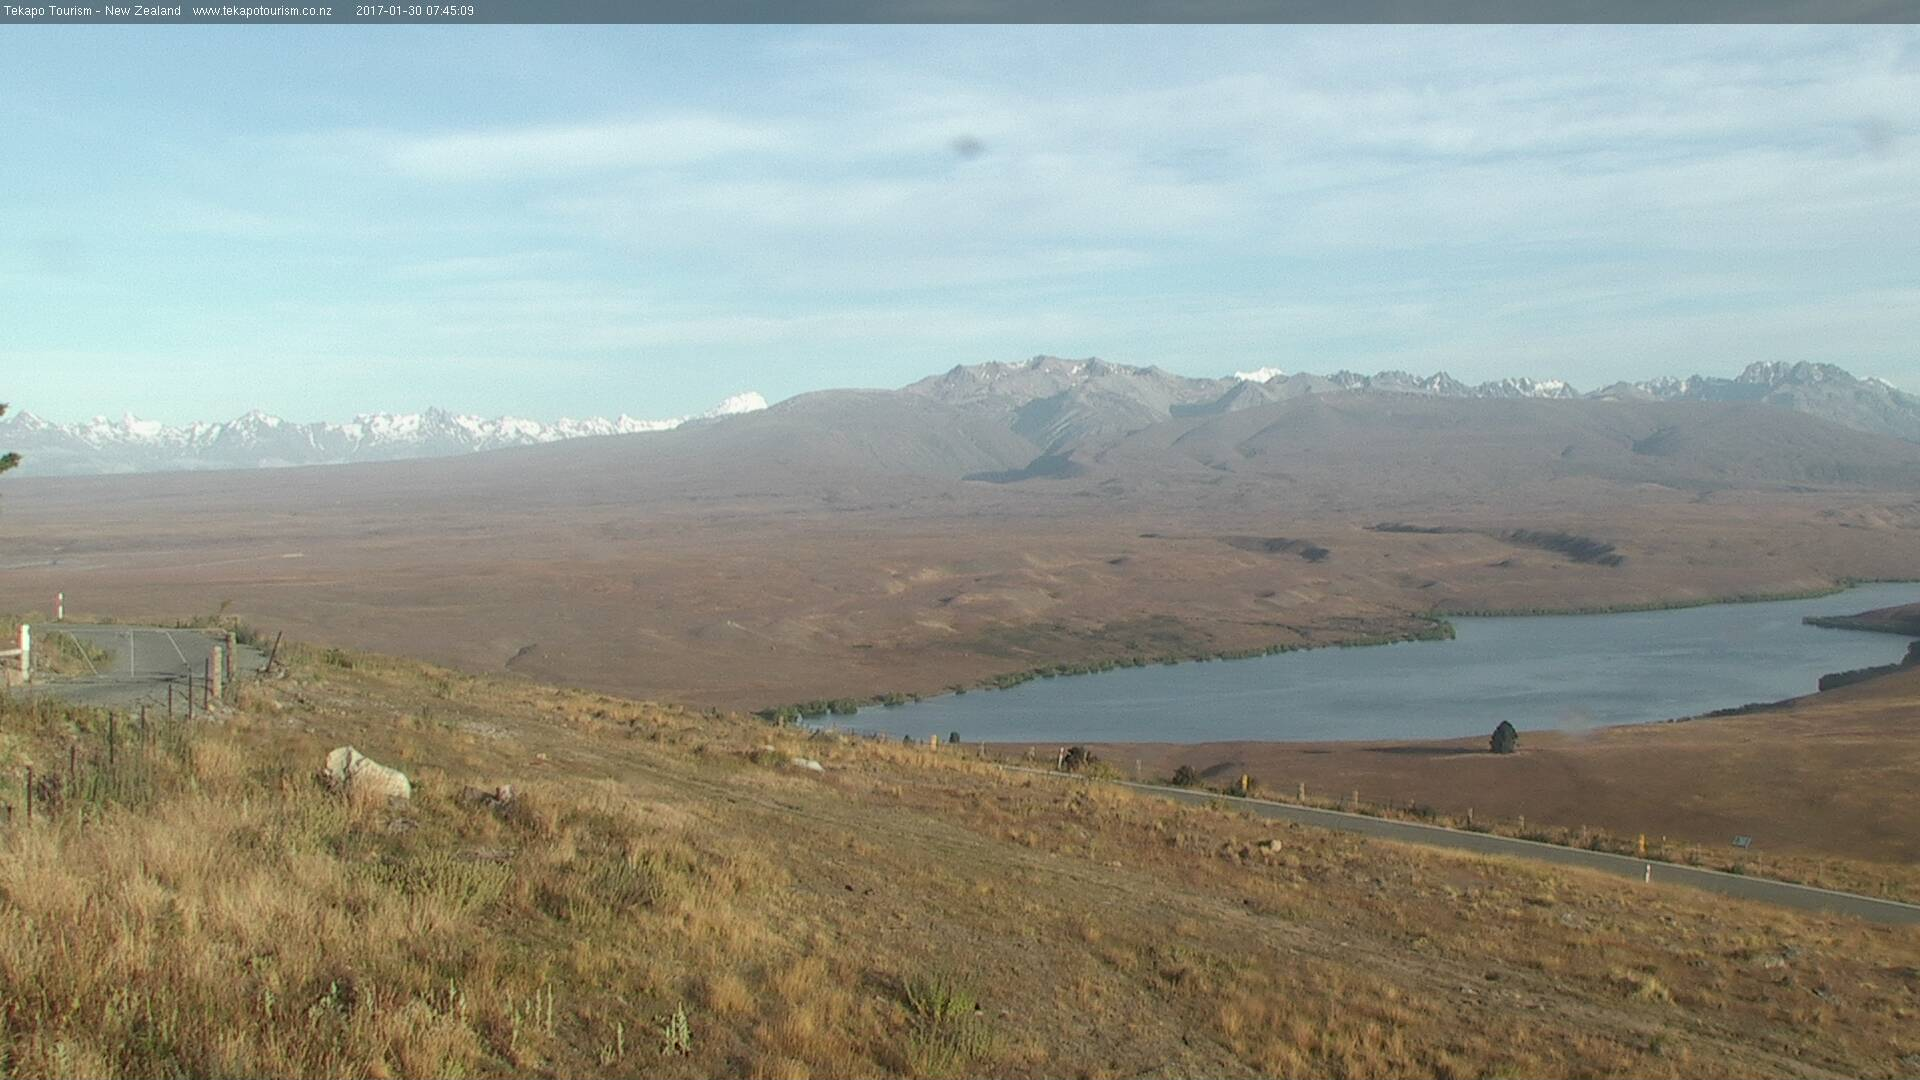 webcam Lake Tekapo W Tekapo